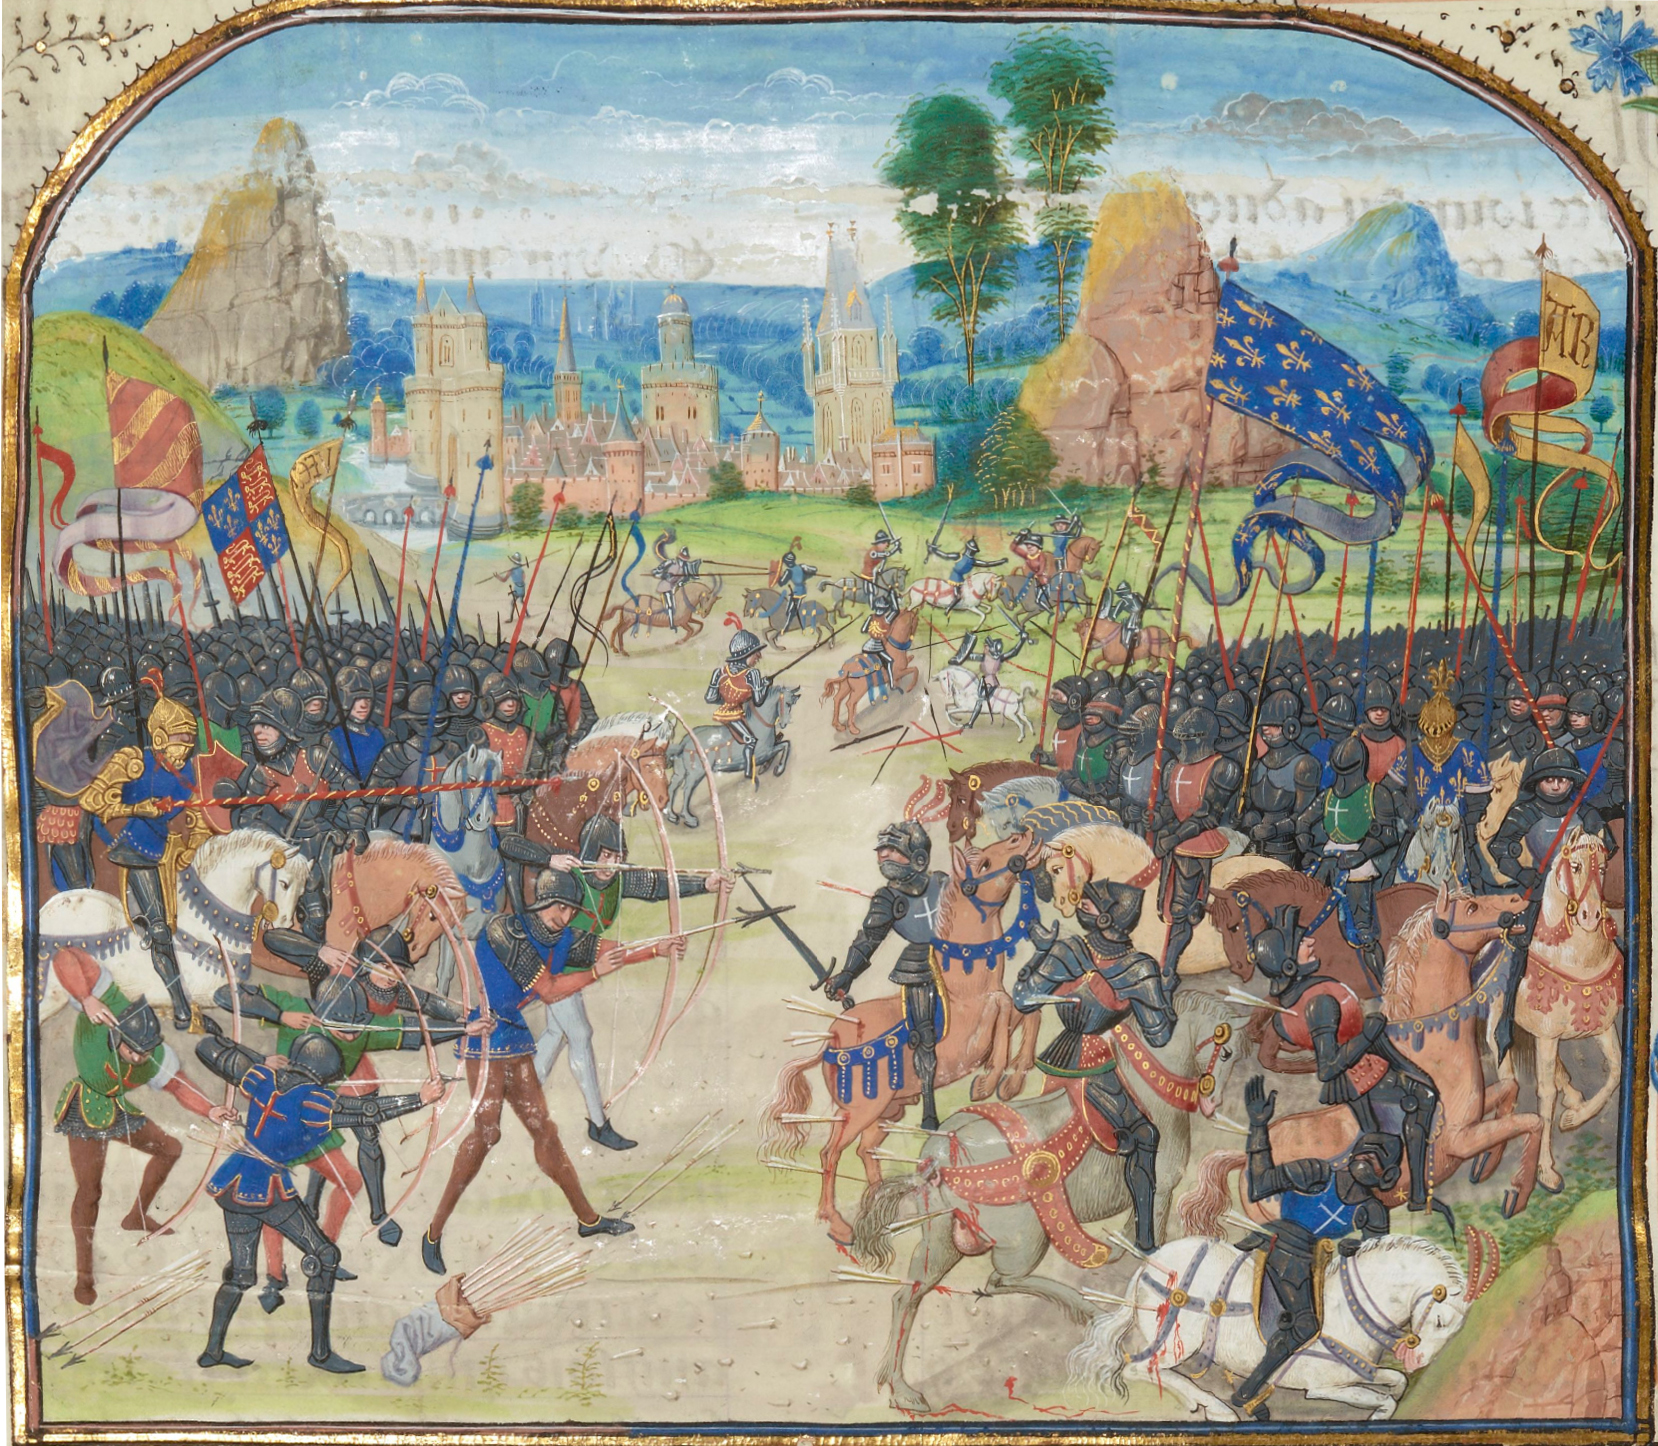 an overview of the english control over france from 1337 to 1453 In 1066 the duke of normandy crossed the english channel with 6000 soldiers   years' war (1337–1453) the duchy seesawed between french and english  rule  normandy for some 30 years until france gained permanent control in  1450.